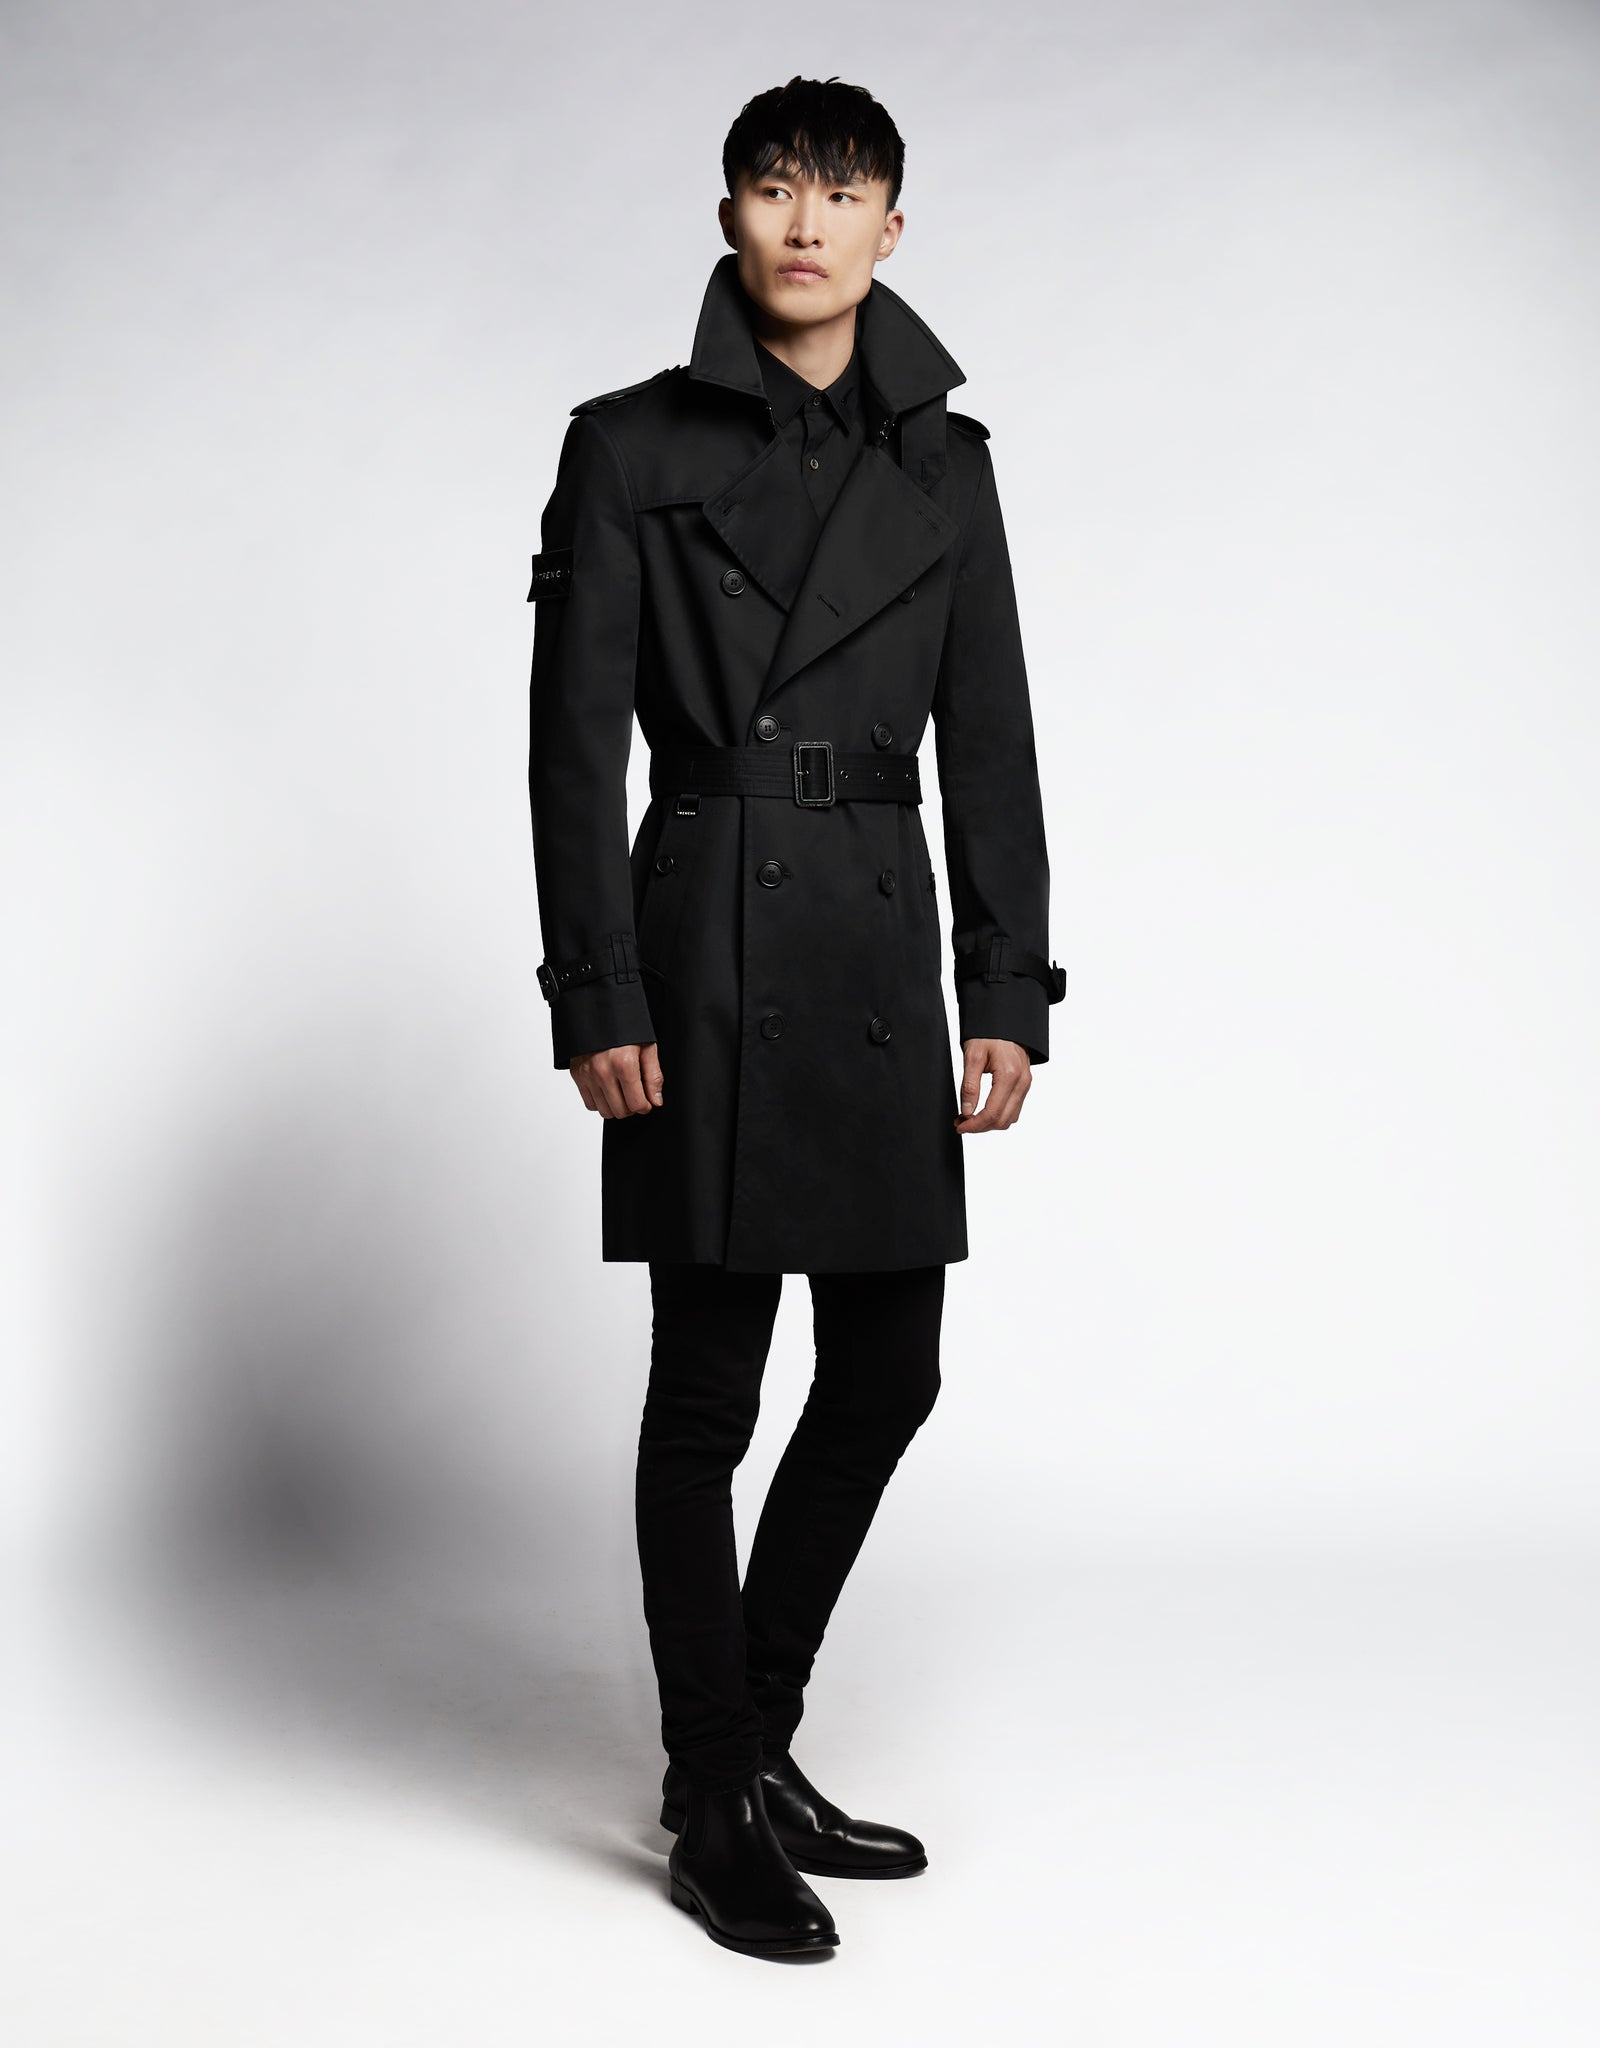 THE KING SUPERFINE ORGANIC CLASSIC TRENCH COAT